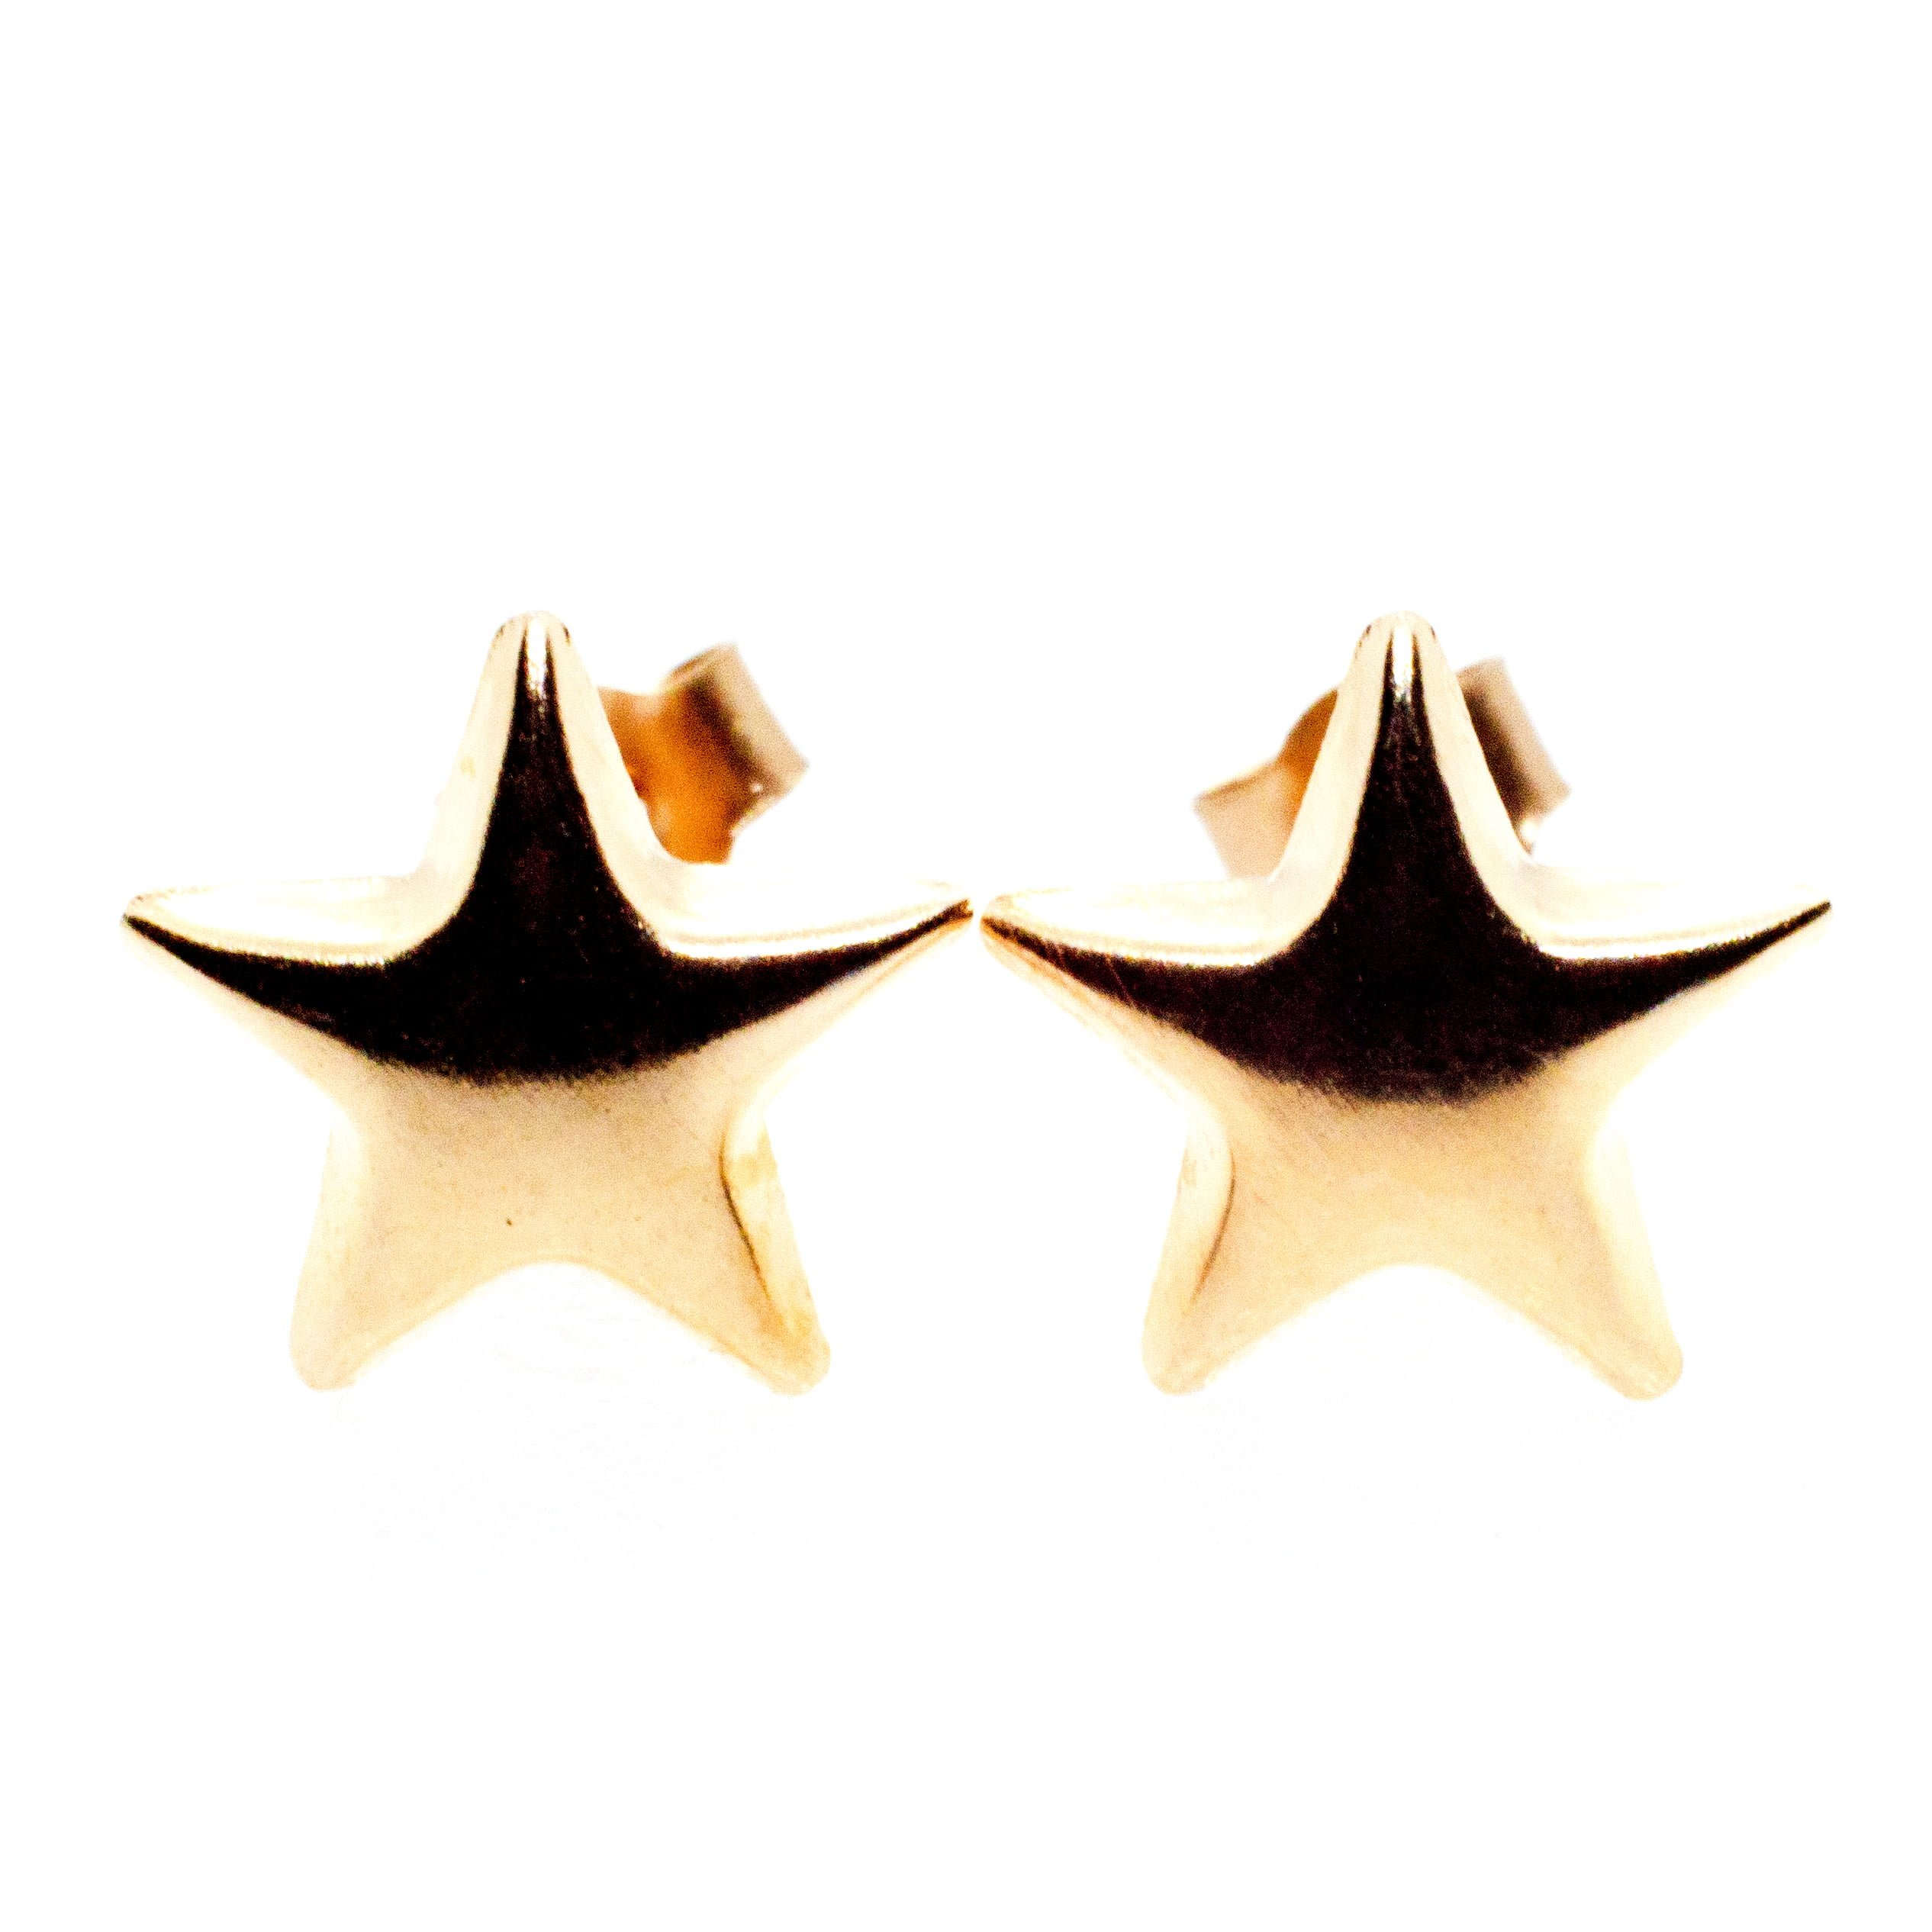 9ct gold star earrings close